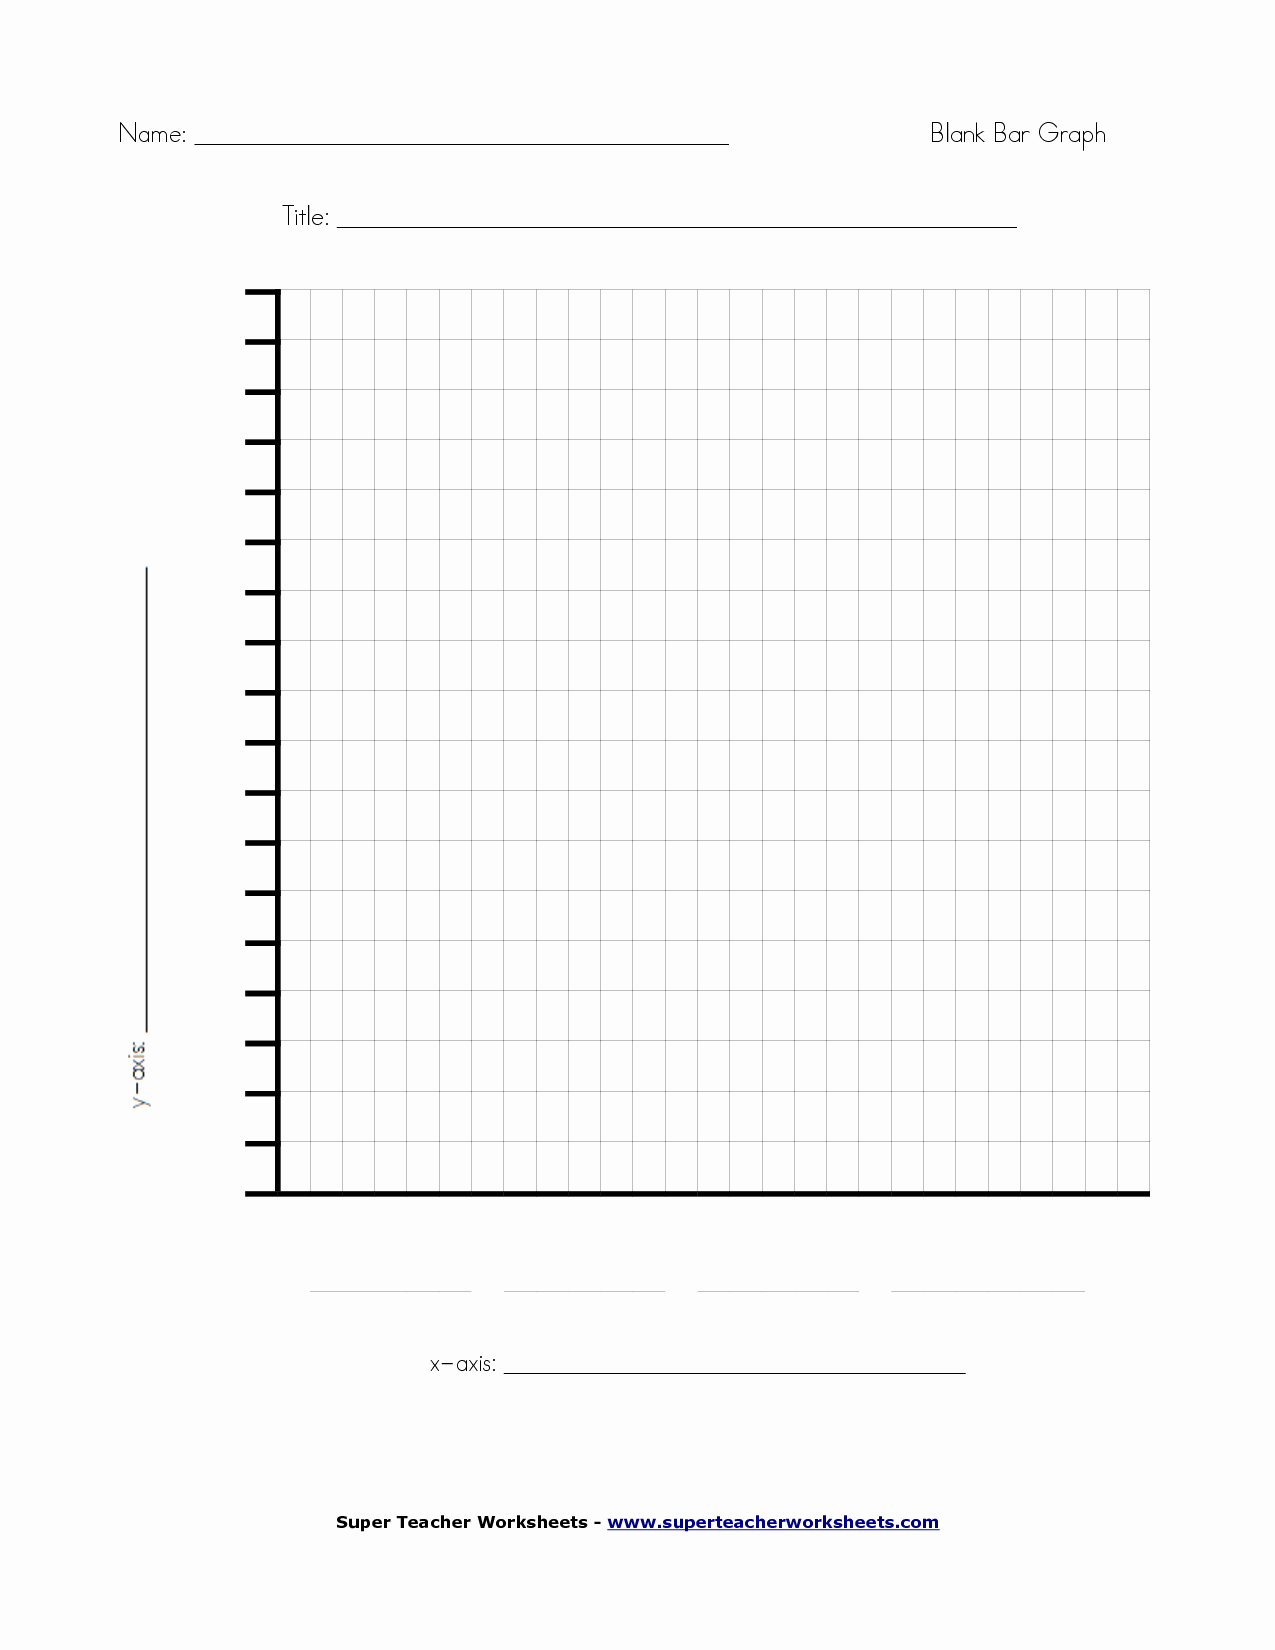 19 Best Of Super Teacher Worksheets Bar Graph